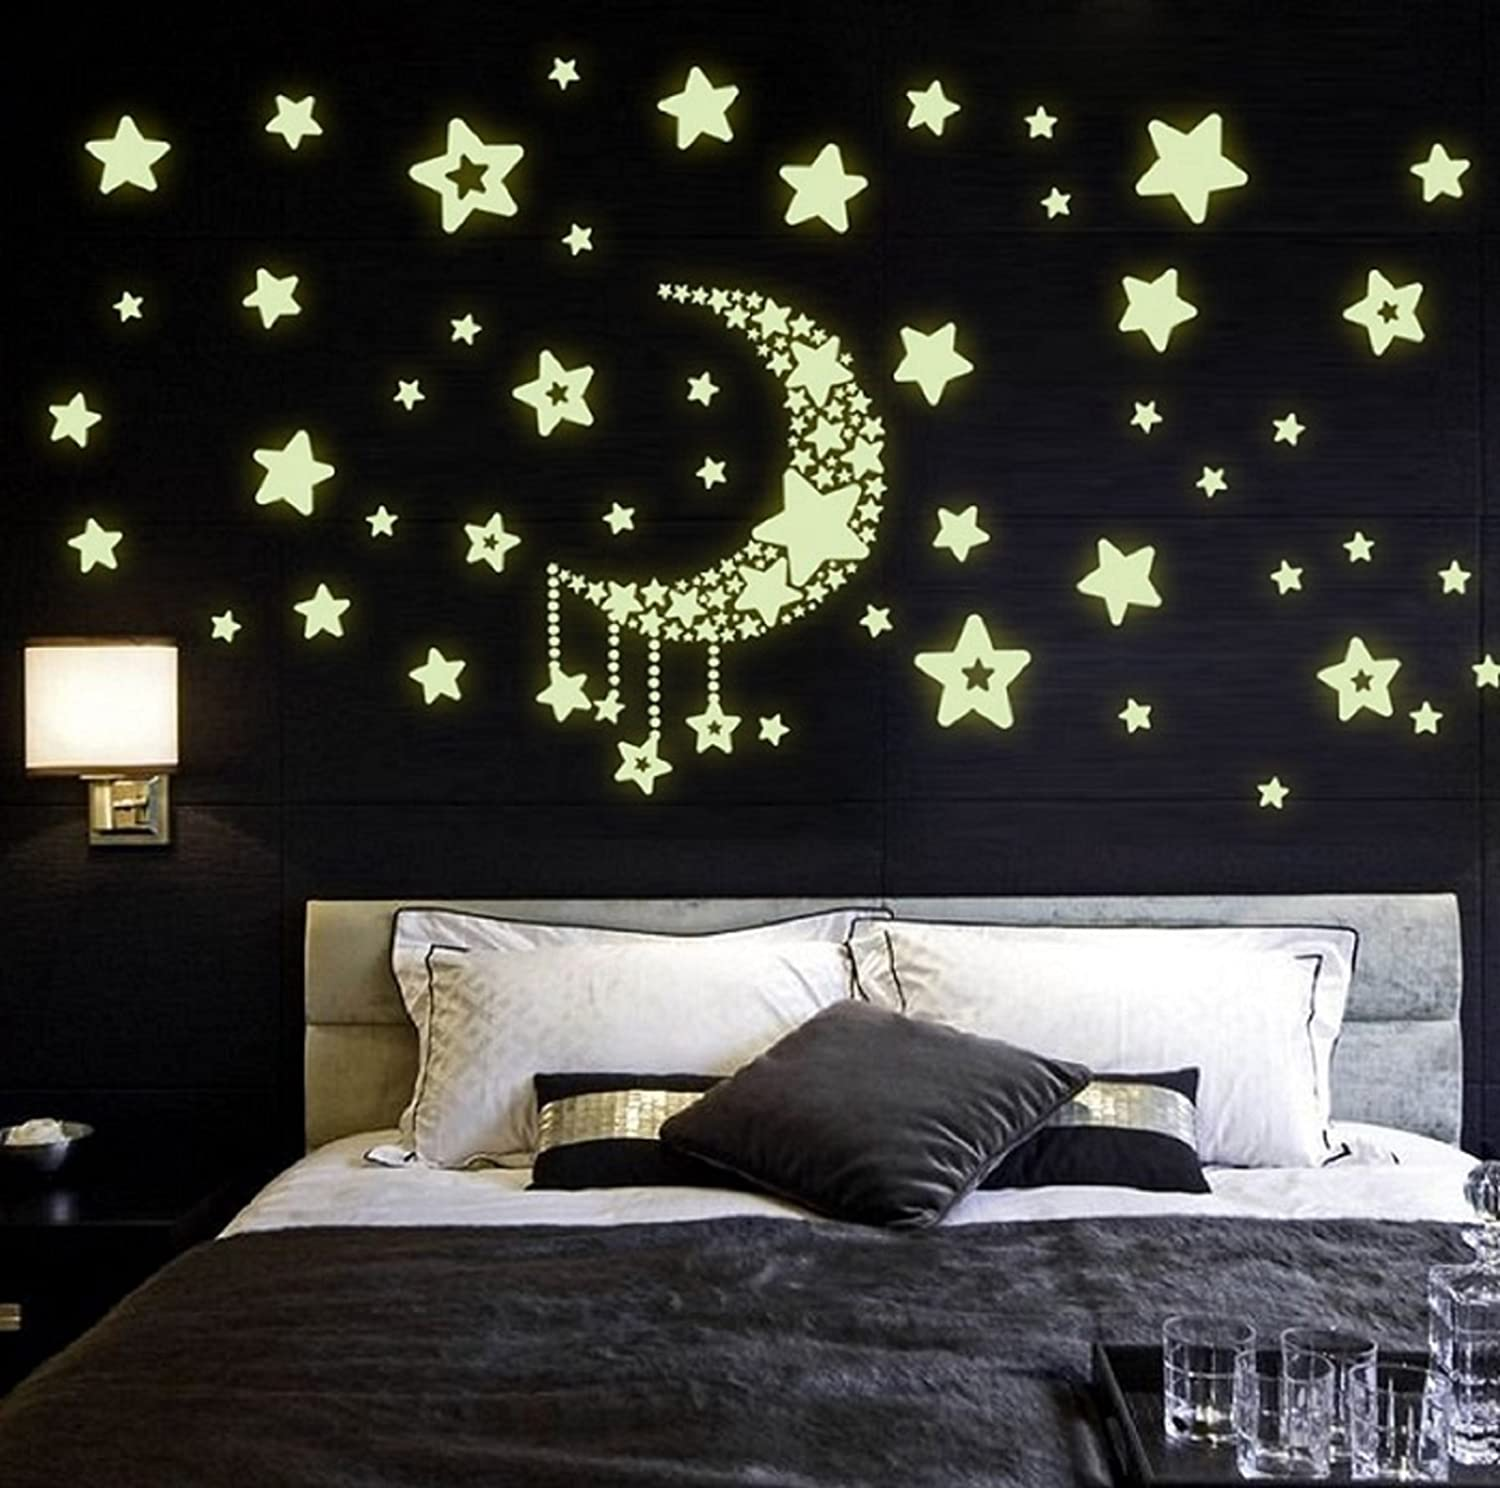 Buy Jaamso Royals U0027Moon And Stars Glow In The Darku0027 Wall Sticker (Vinyl, 32  Cm X 24 Cm X 0.5 Cm) Online At Low Prices In India   Amazon.in